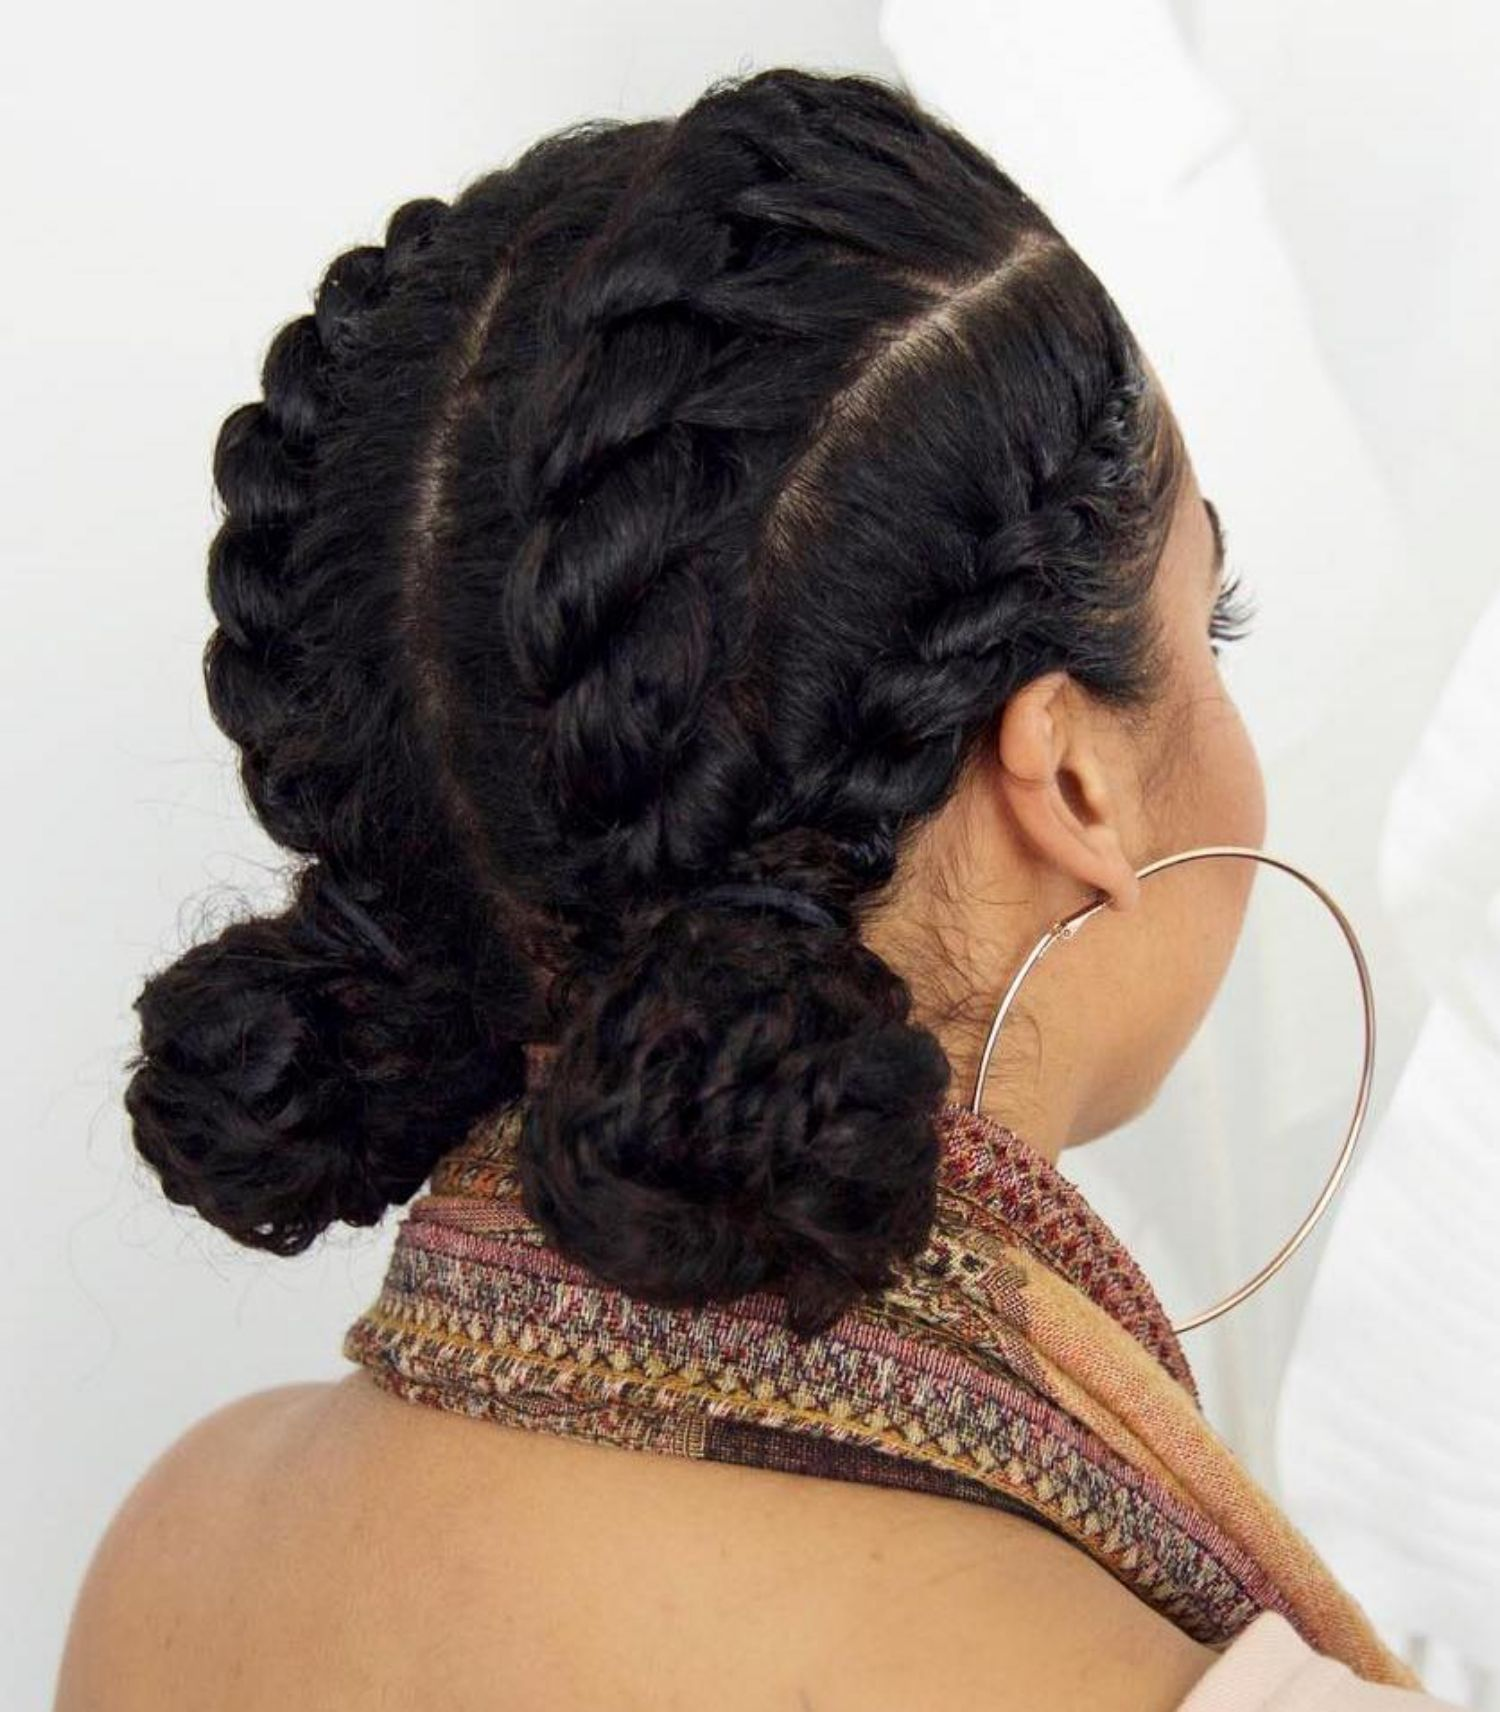 Two Low Buns Protective Updo Protective Hairstyles For Natural Hair Natural Hair Styles Easy Natural Hair Styles